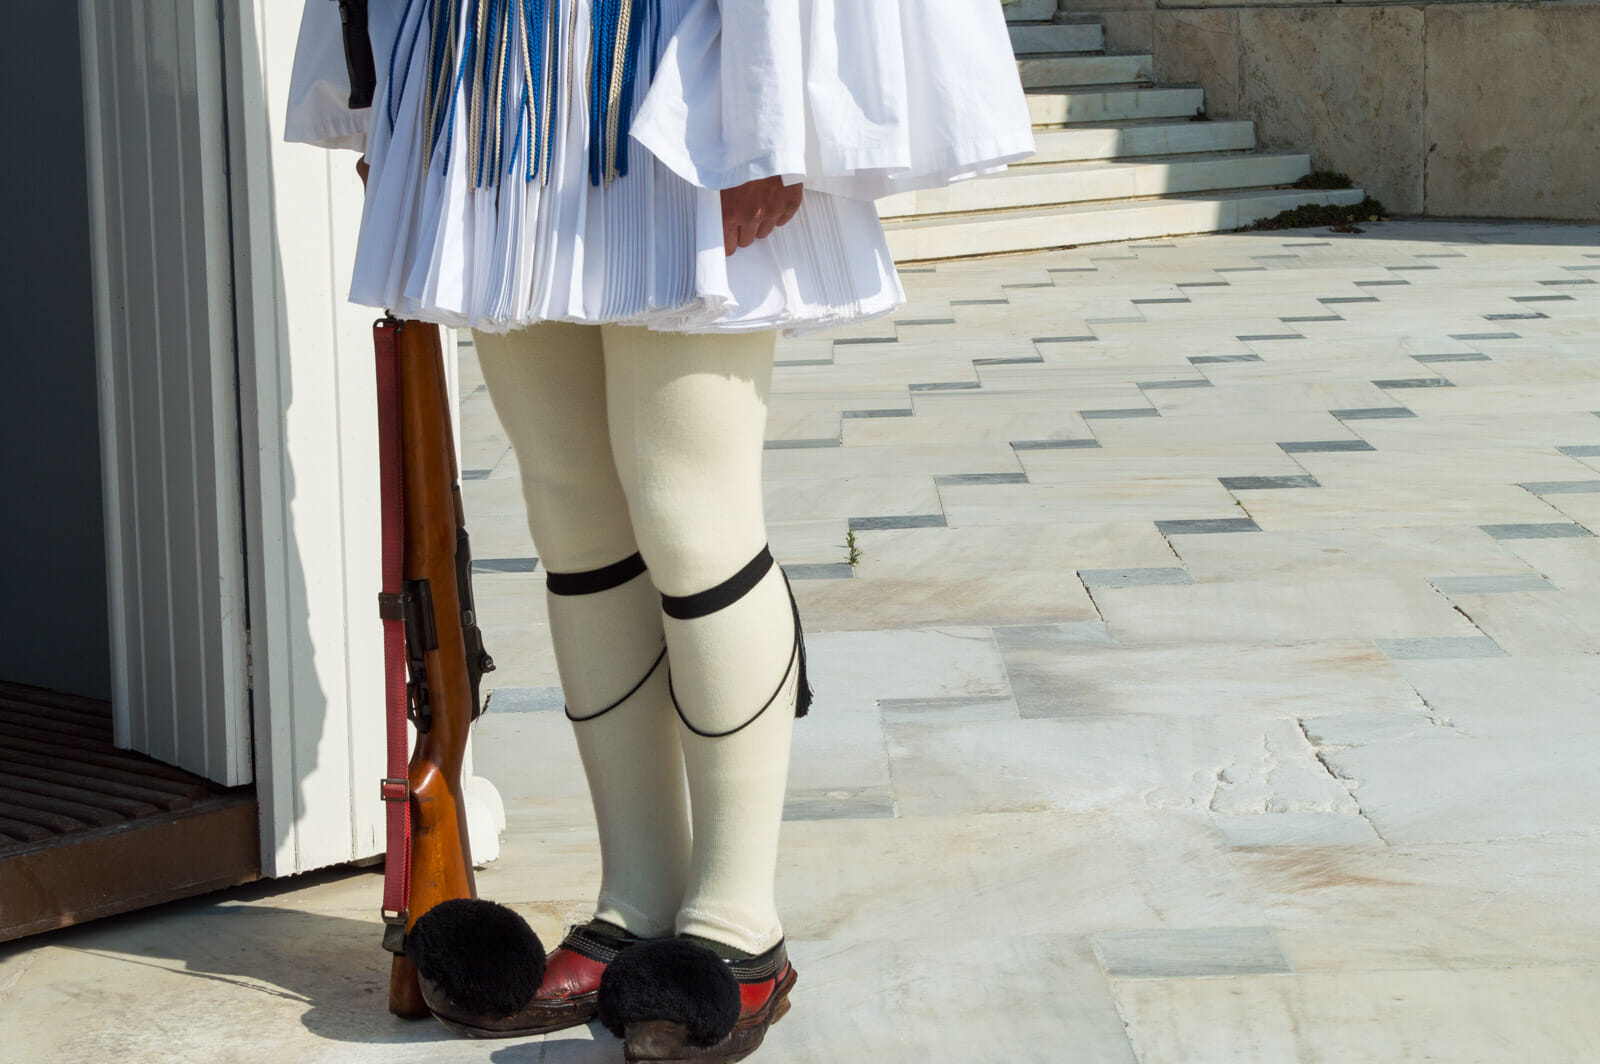 Footwear of Athenian guards